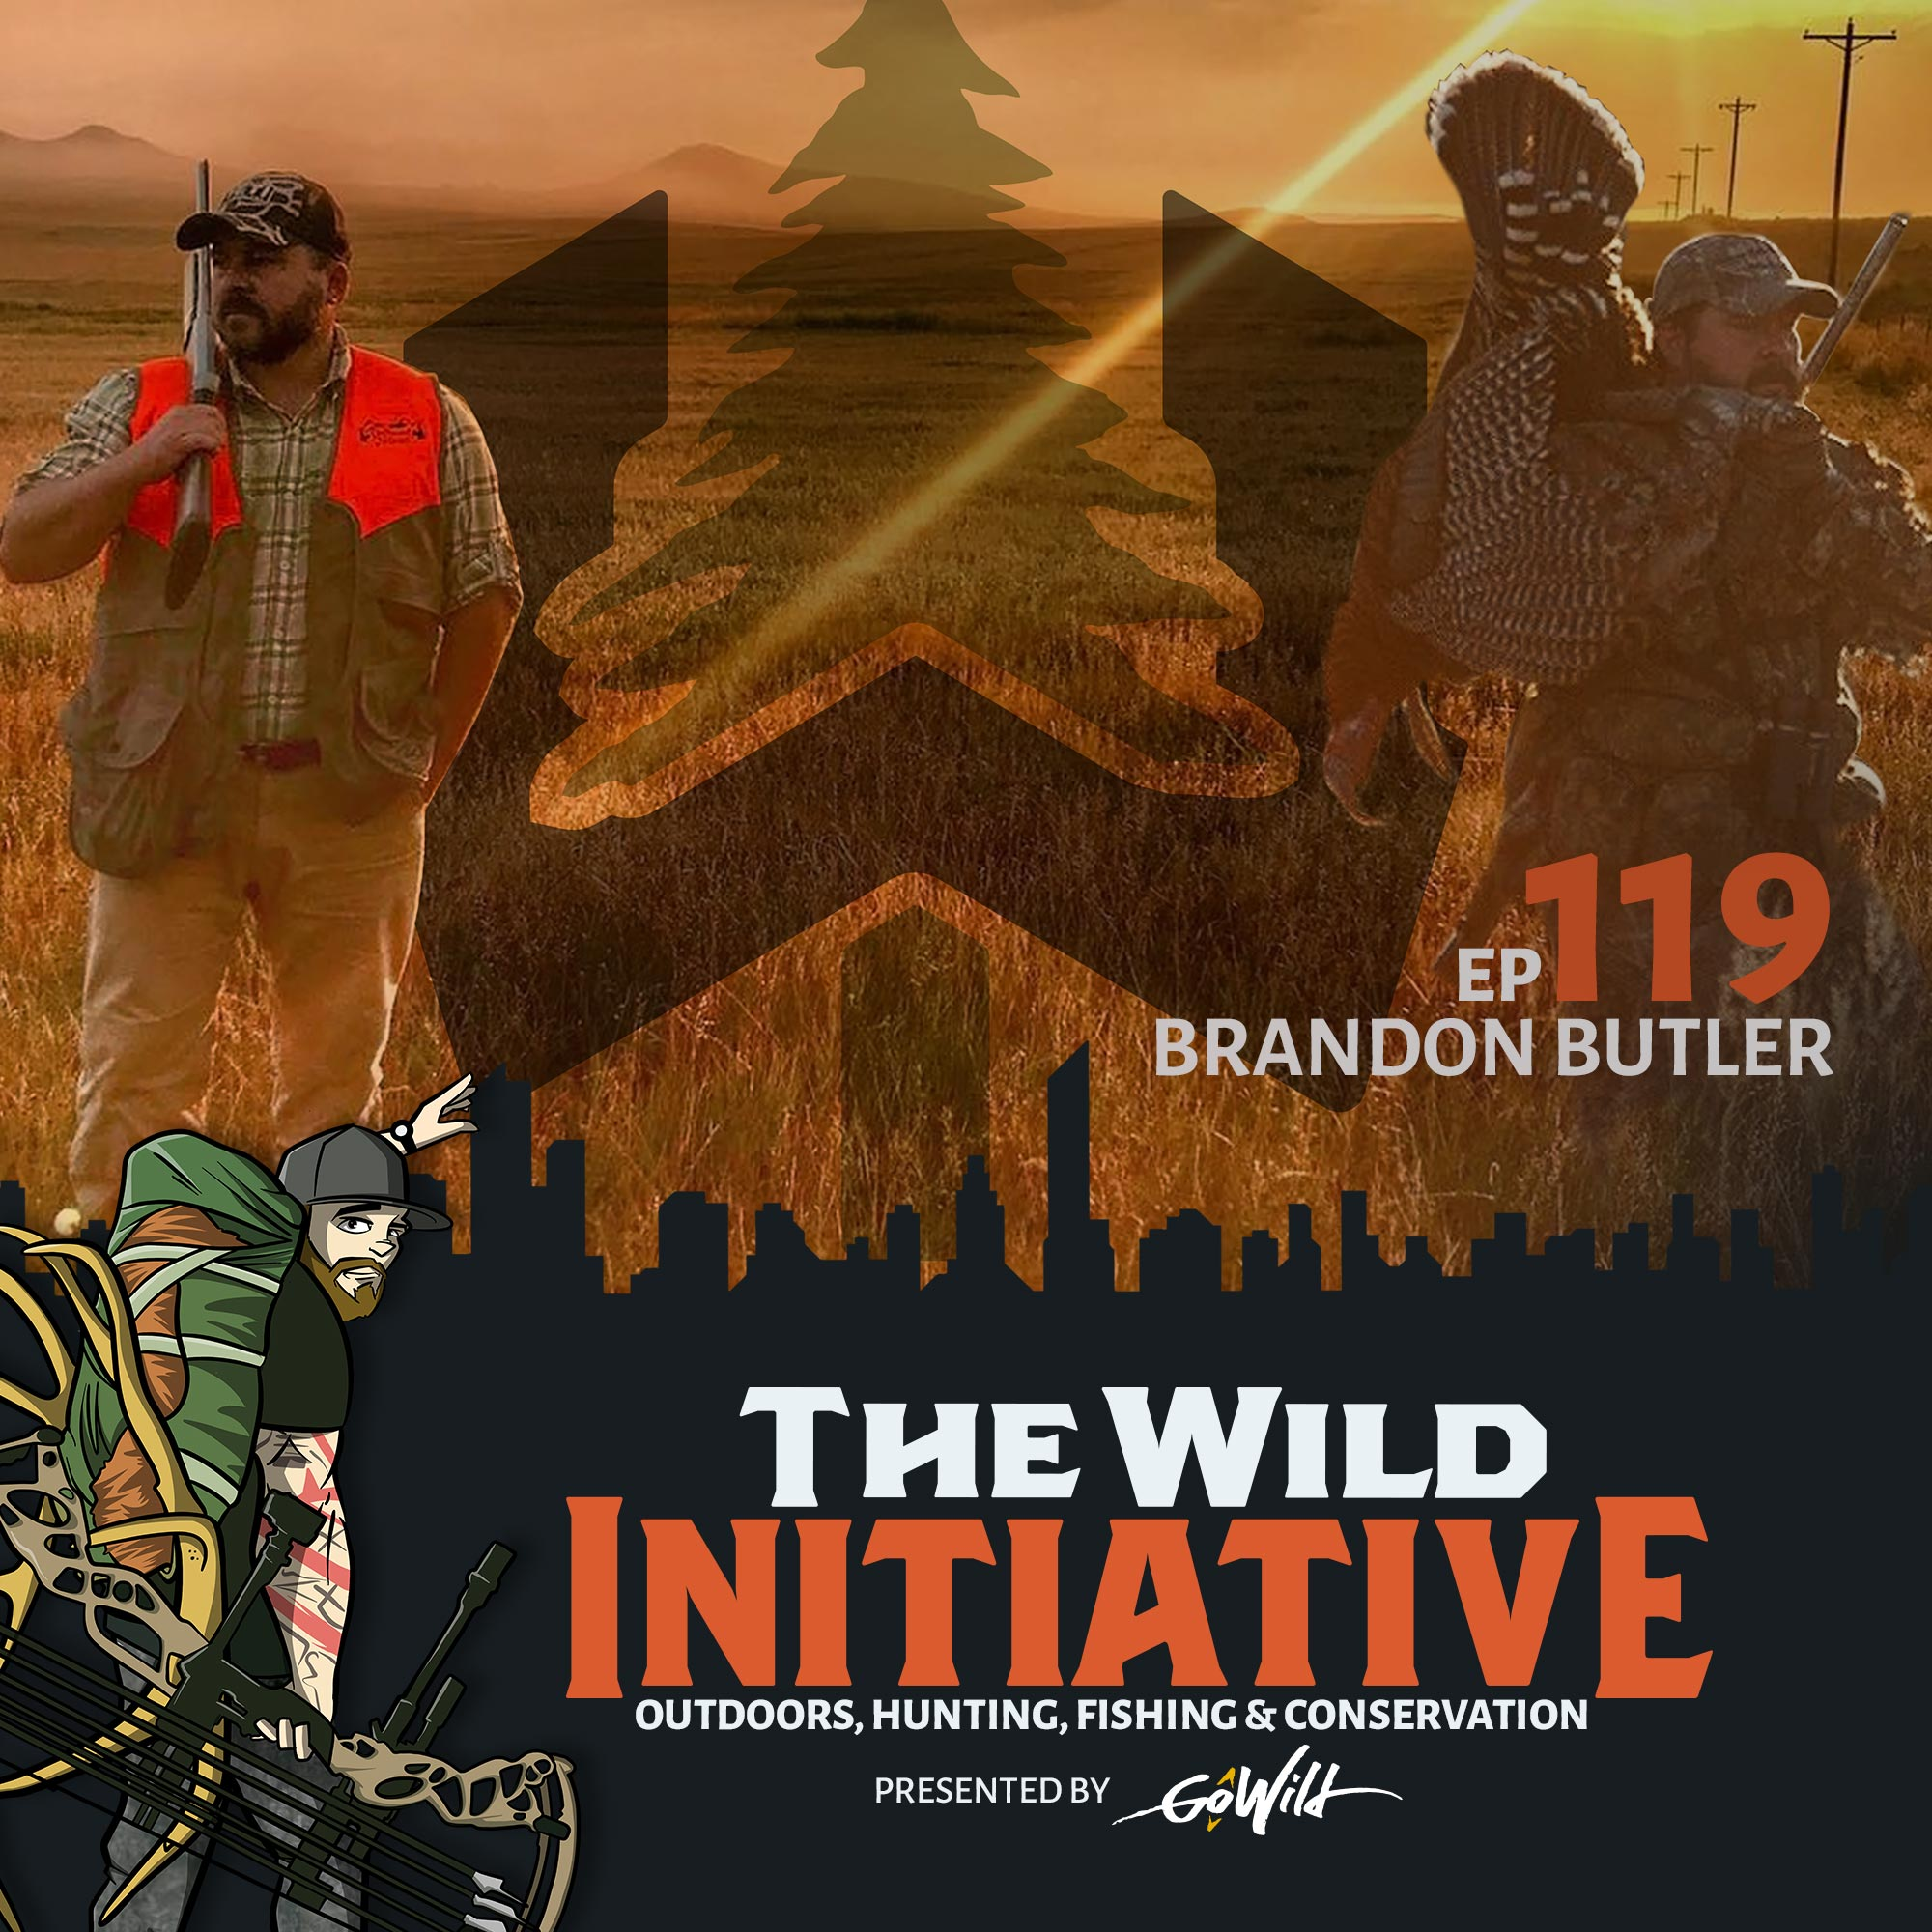 Ep 119 Brandon Butler - The Wild Initiative - Outdoors, Hunting, Fishing & Conservation